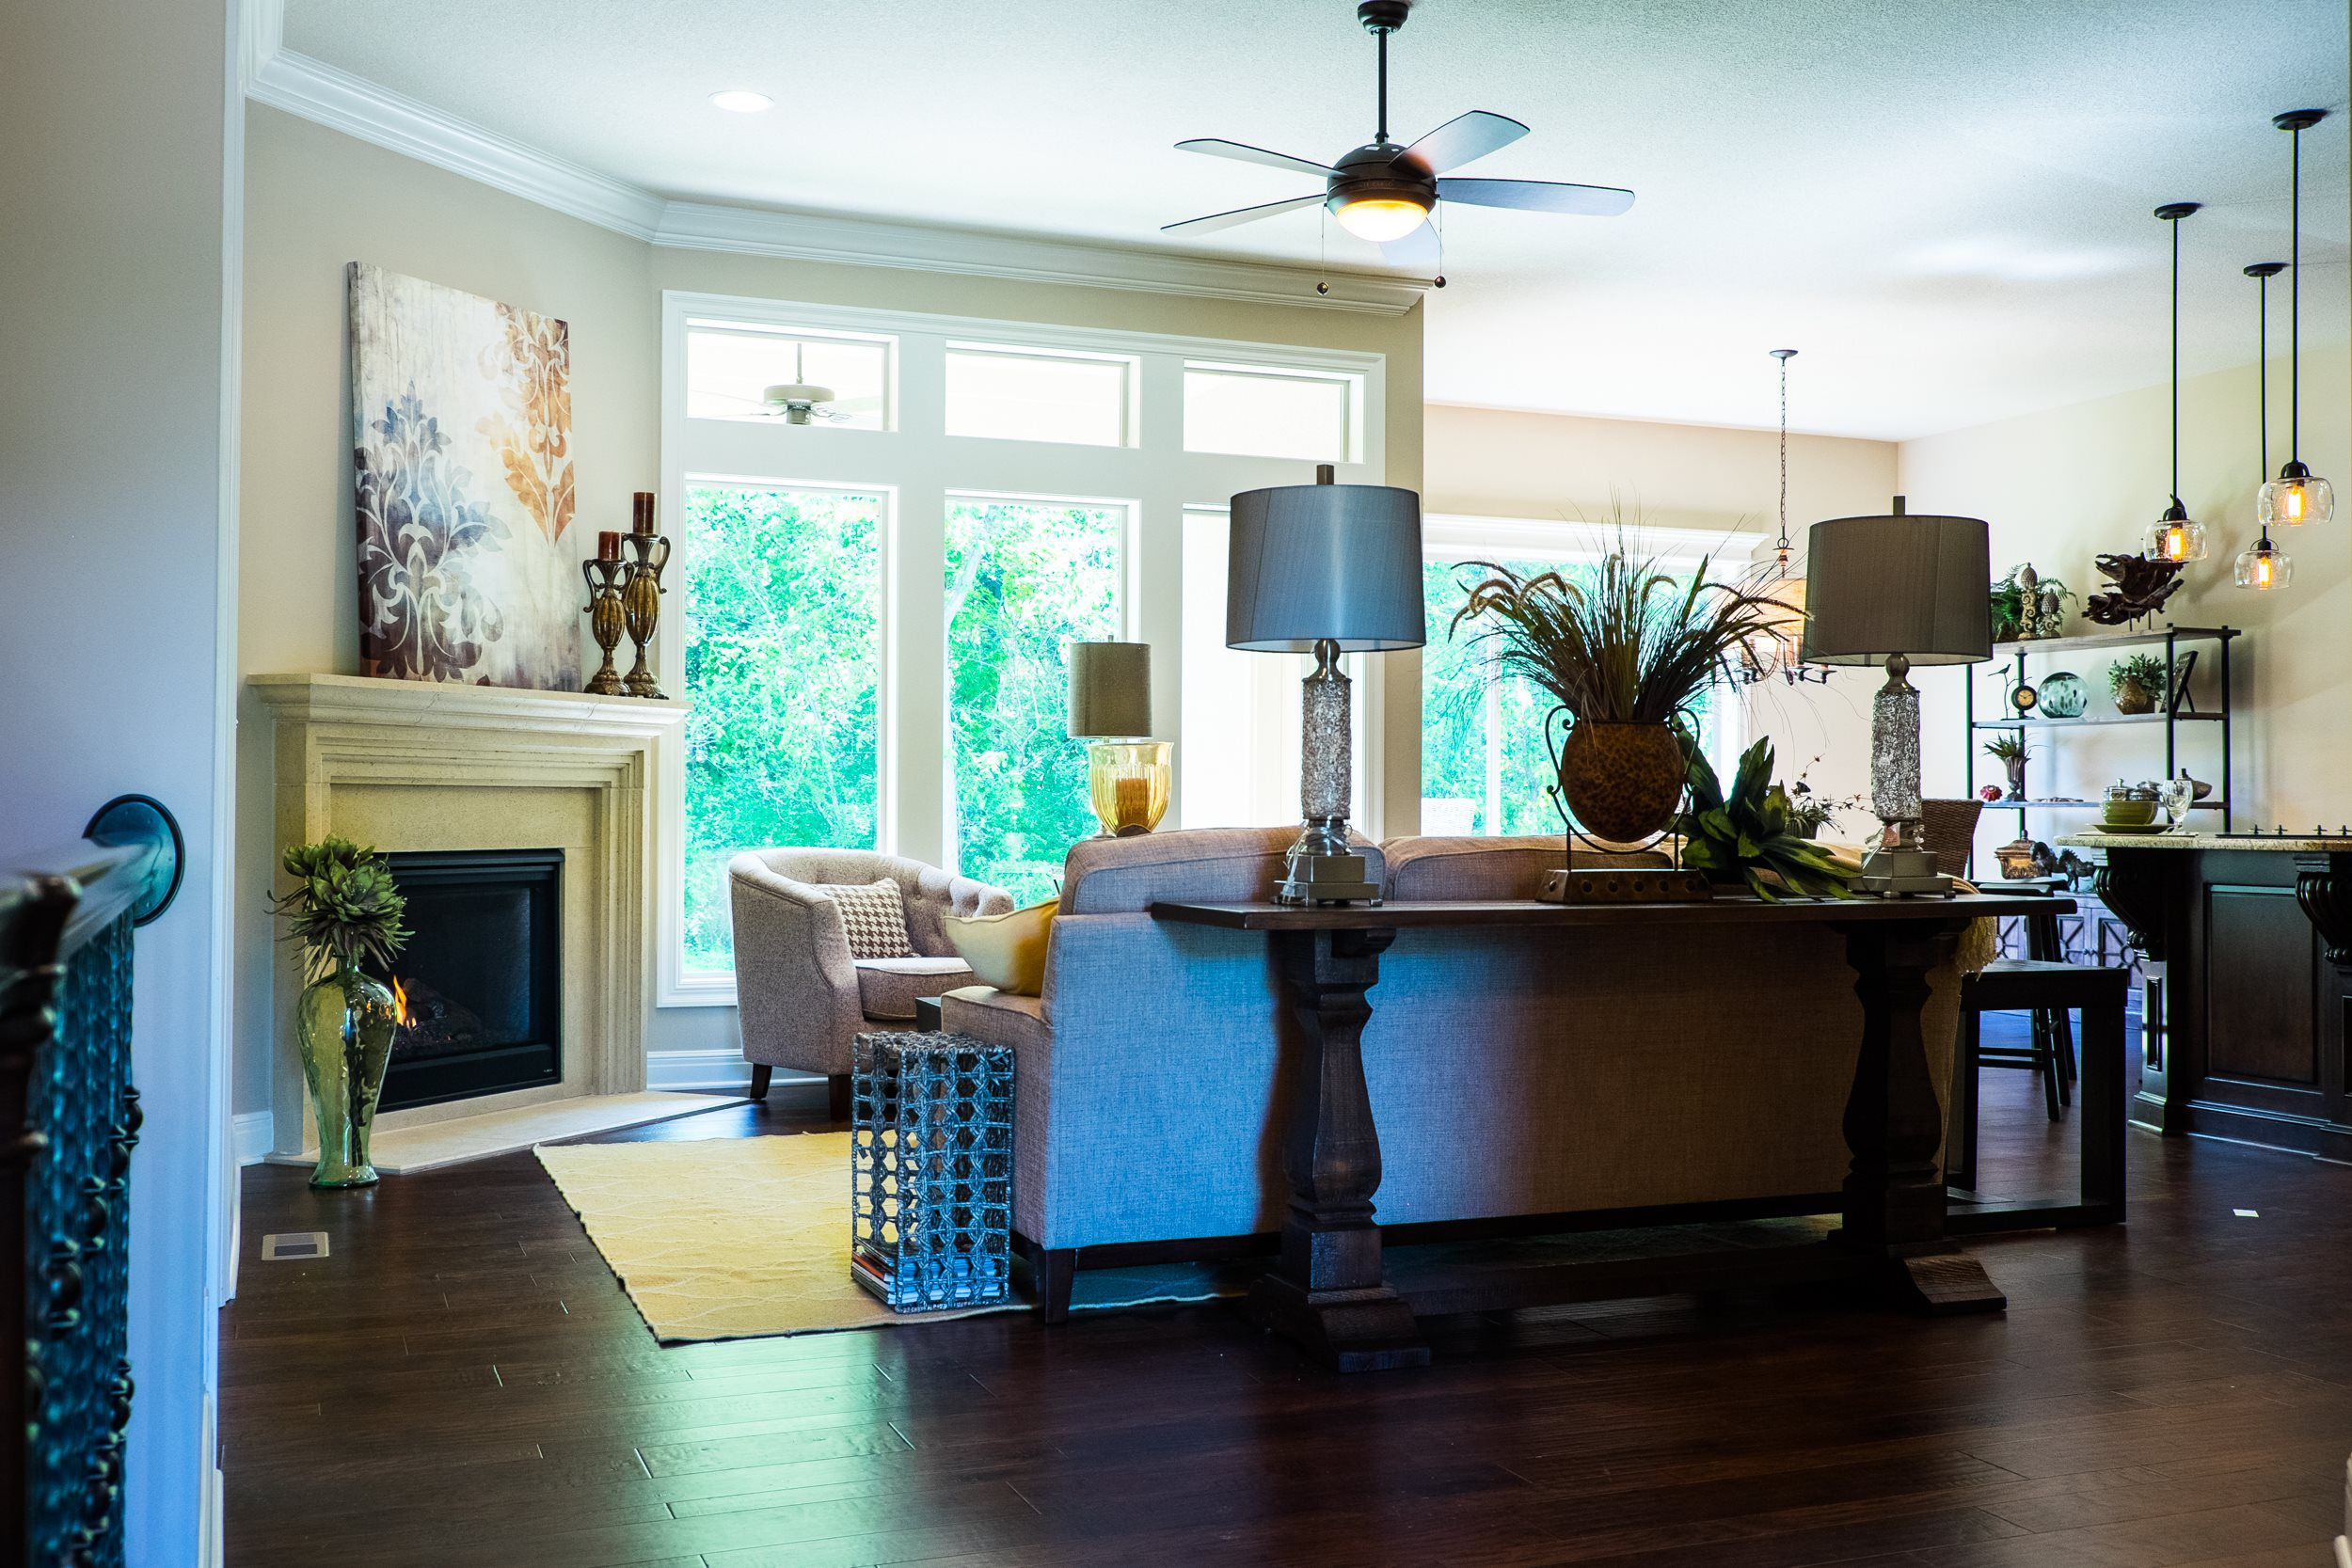 Home - Tampa Bay Millworks, LLC